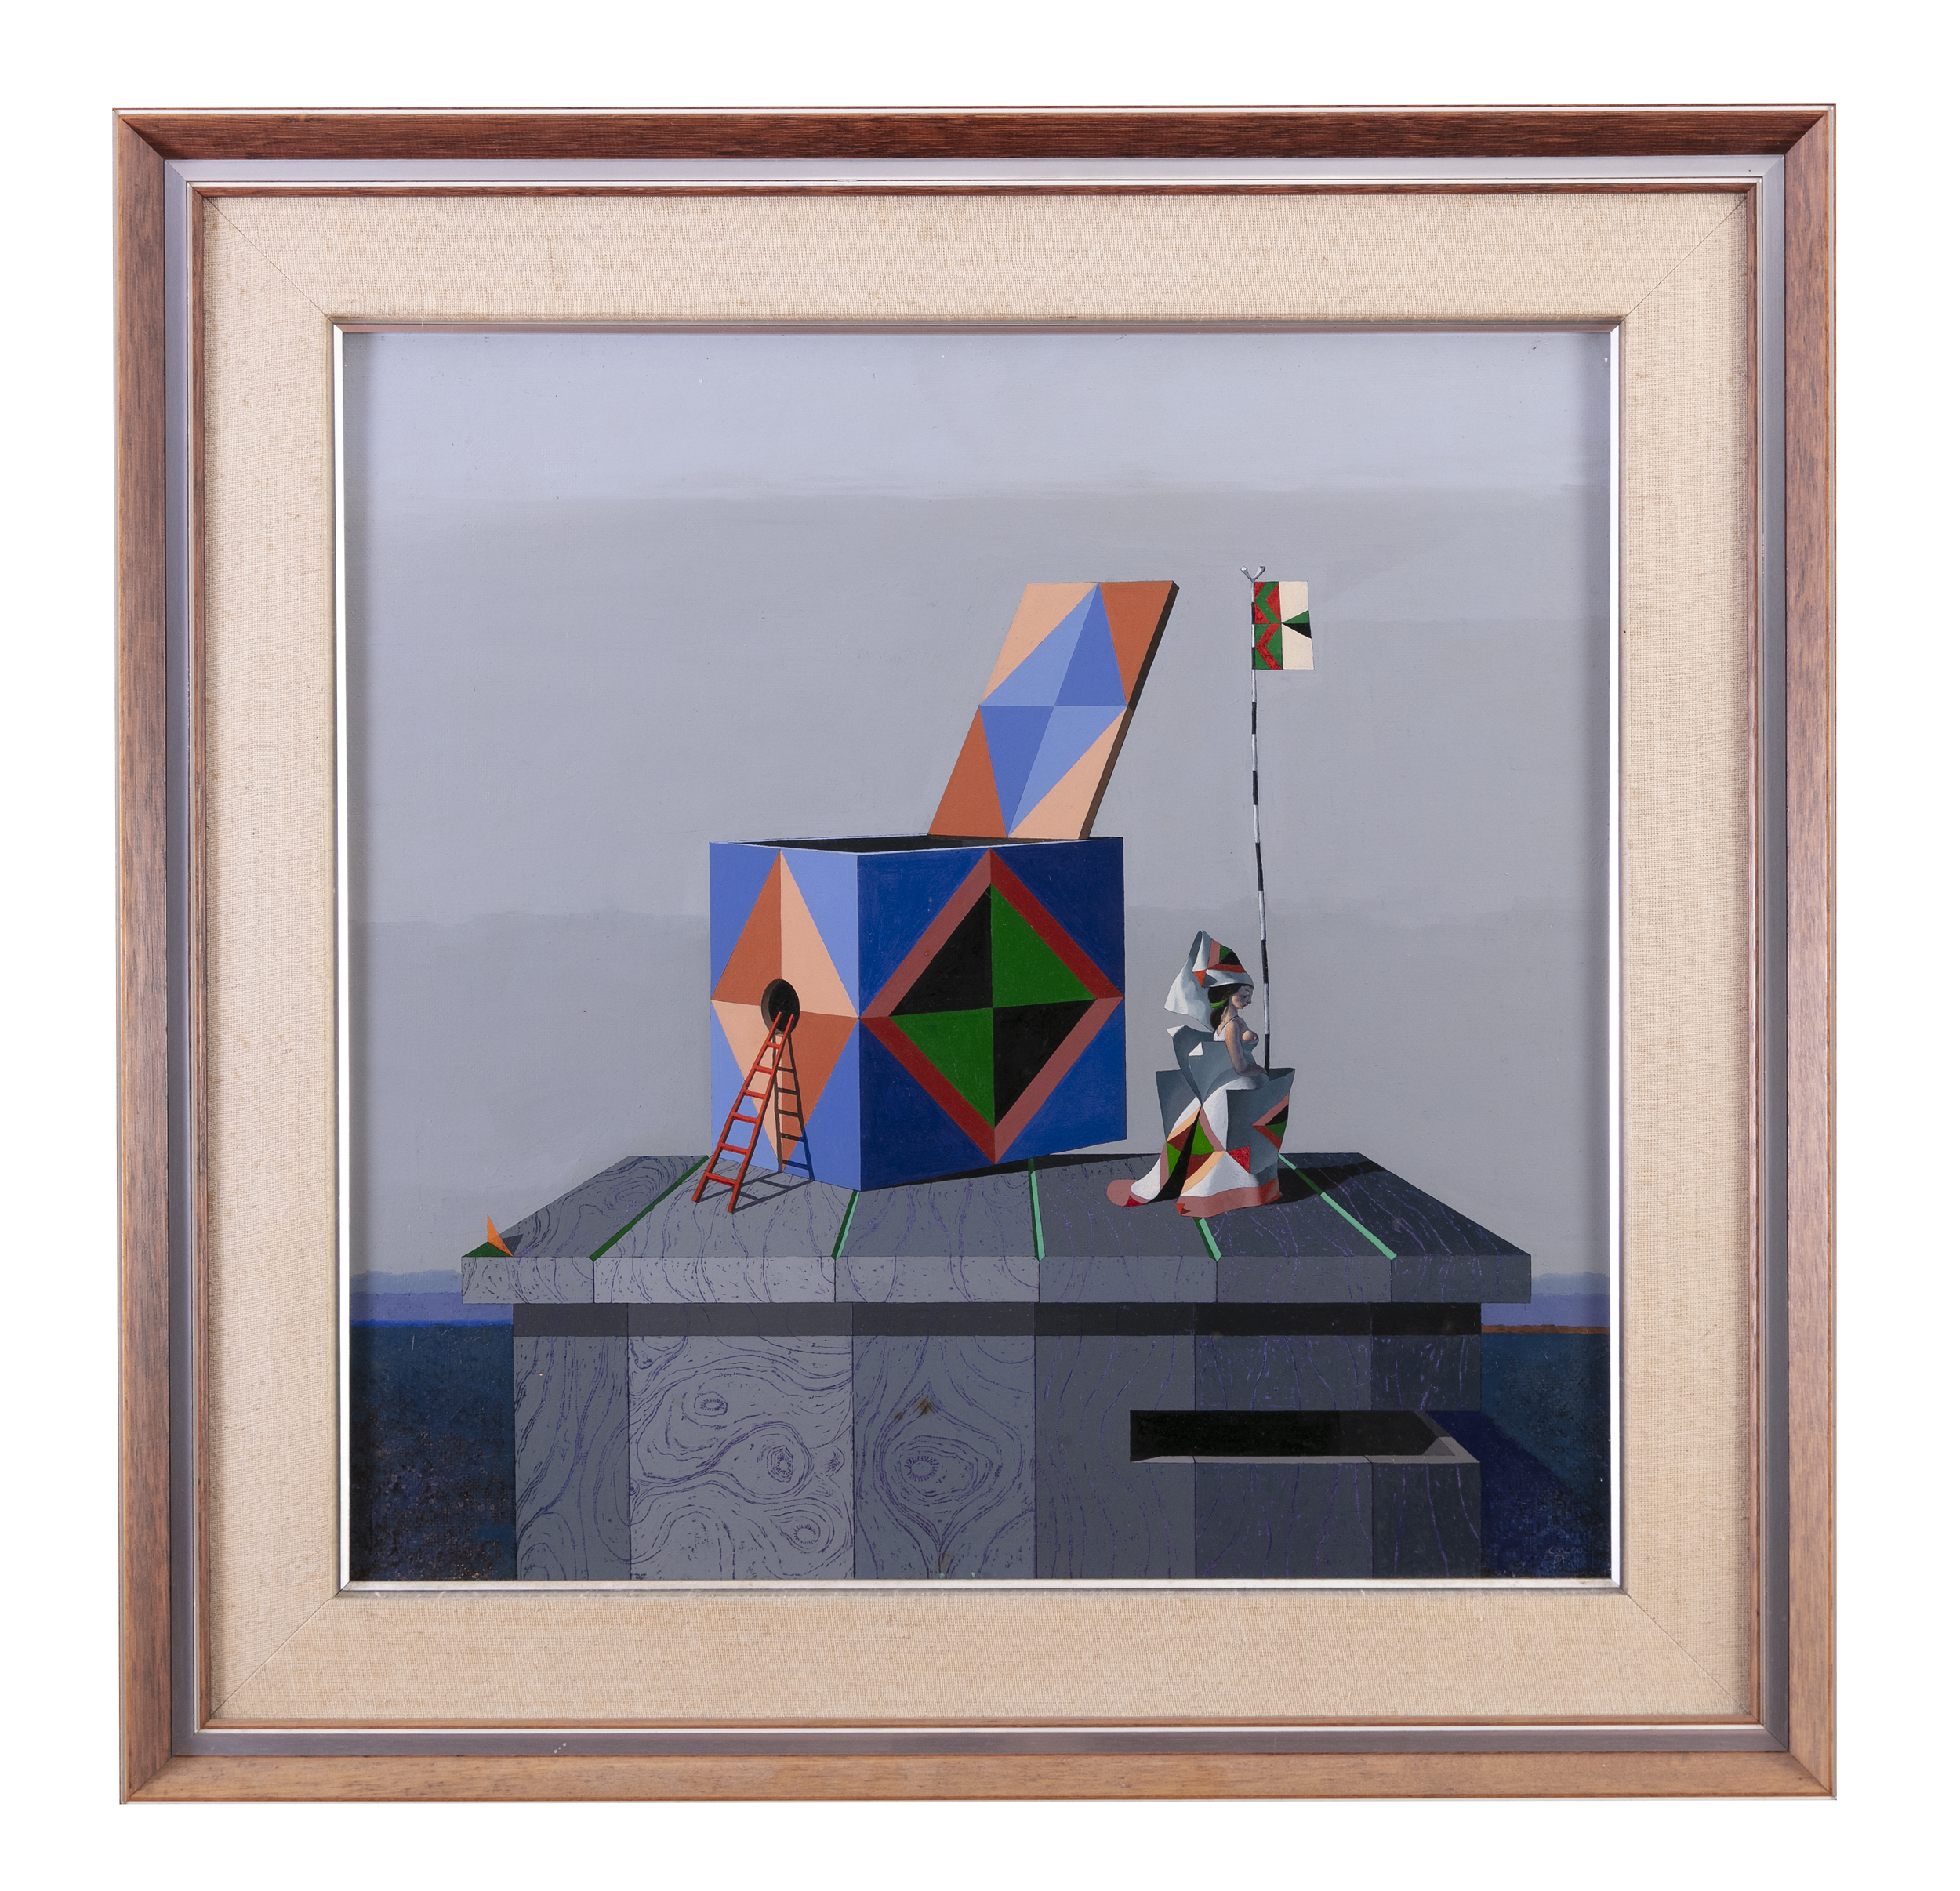 Lot 92 - Colin Middleton RHA RUA MBE (1910-1983)The Catalan Mousetrap (1975)Oil on board, 60 x 60cm (23¾ x